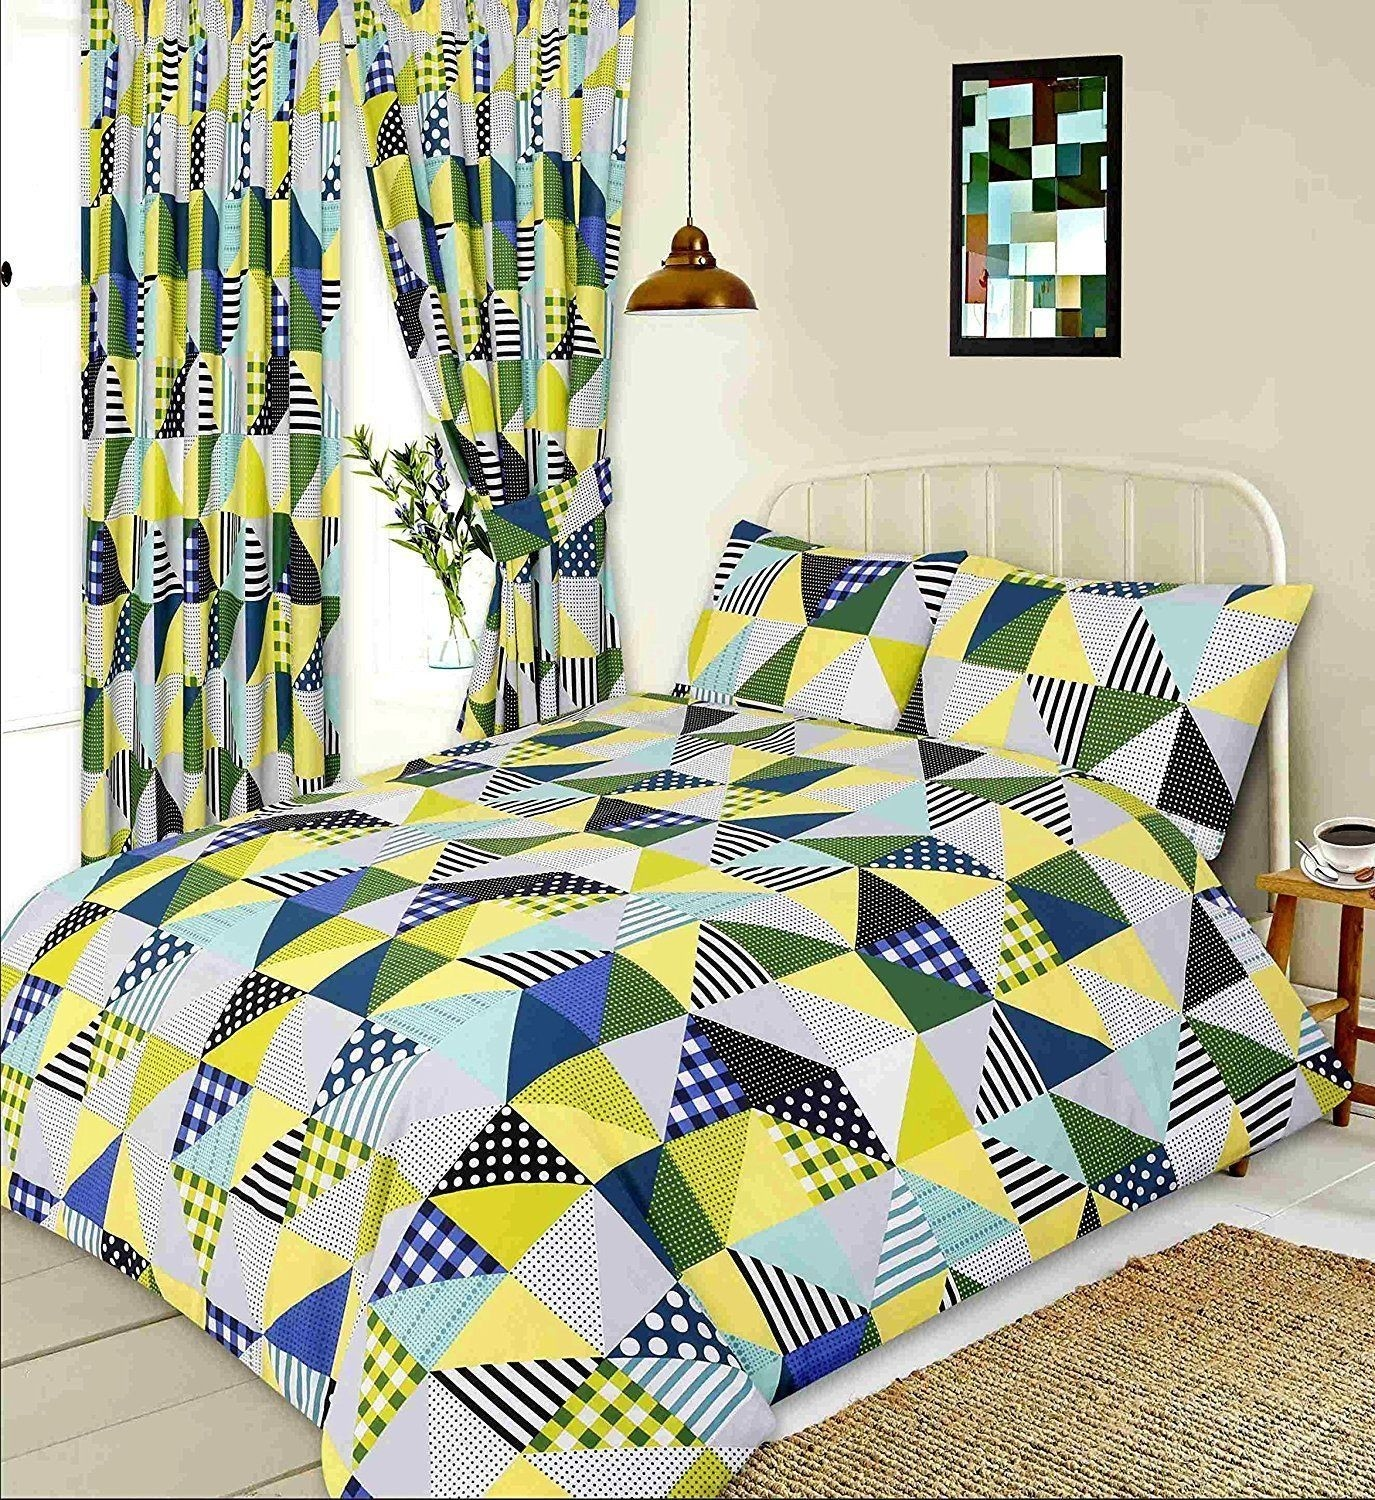 Double Size Geometric Patchwork Design Lime Green, Blue Duvet Cover & Matching Pillowcases